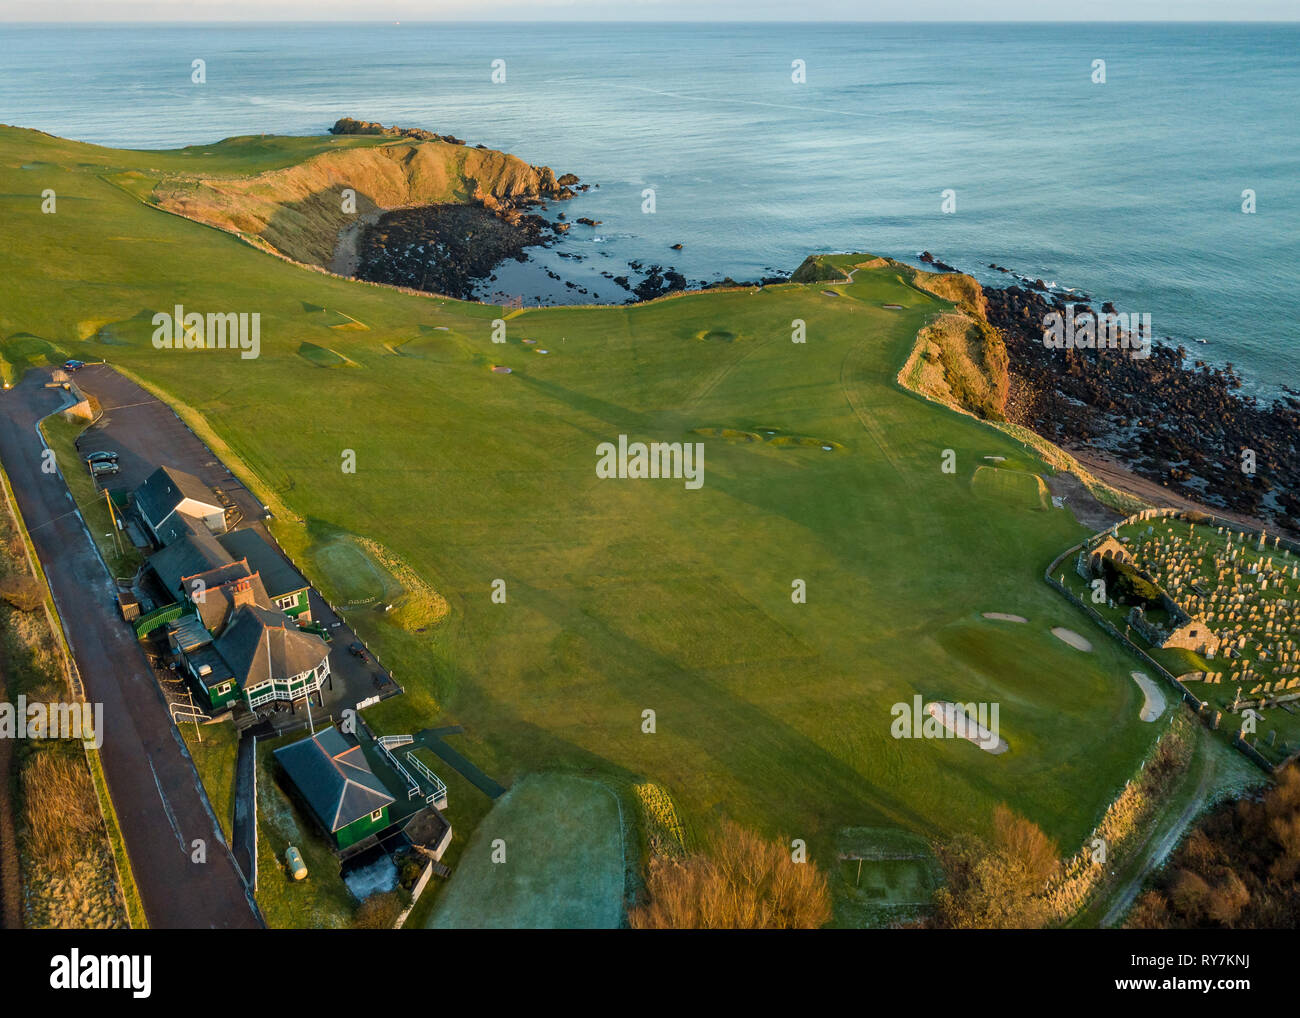 An aerial view of Stonehaven golf course as the sun begins to set, Aberdeenshire, Scotland - Stock Image